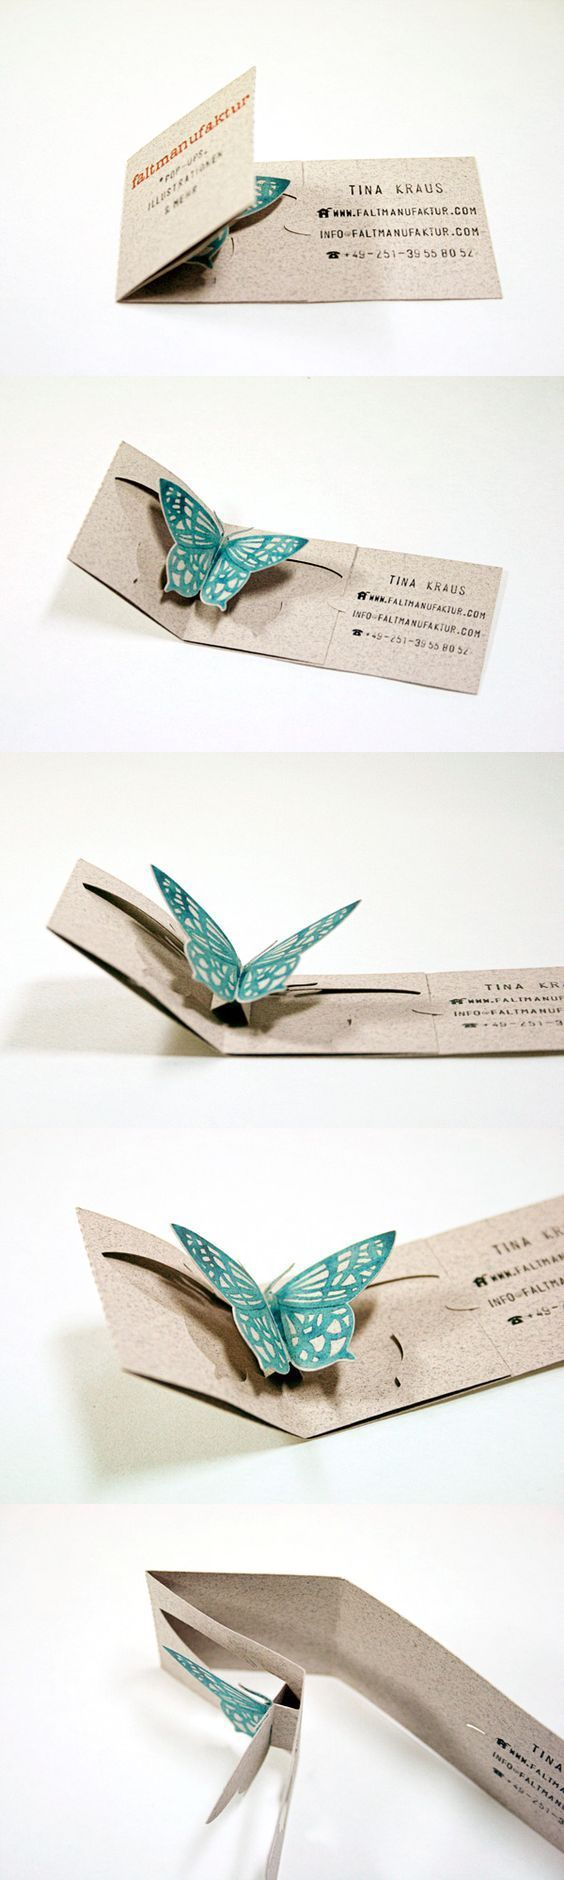 9311 best unique business card design images on pinterest card the pop up works without any glue or tape which makes them easier to unique business cardshome magicingreecefo Gallery